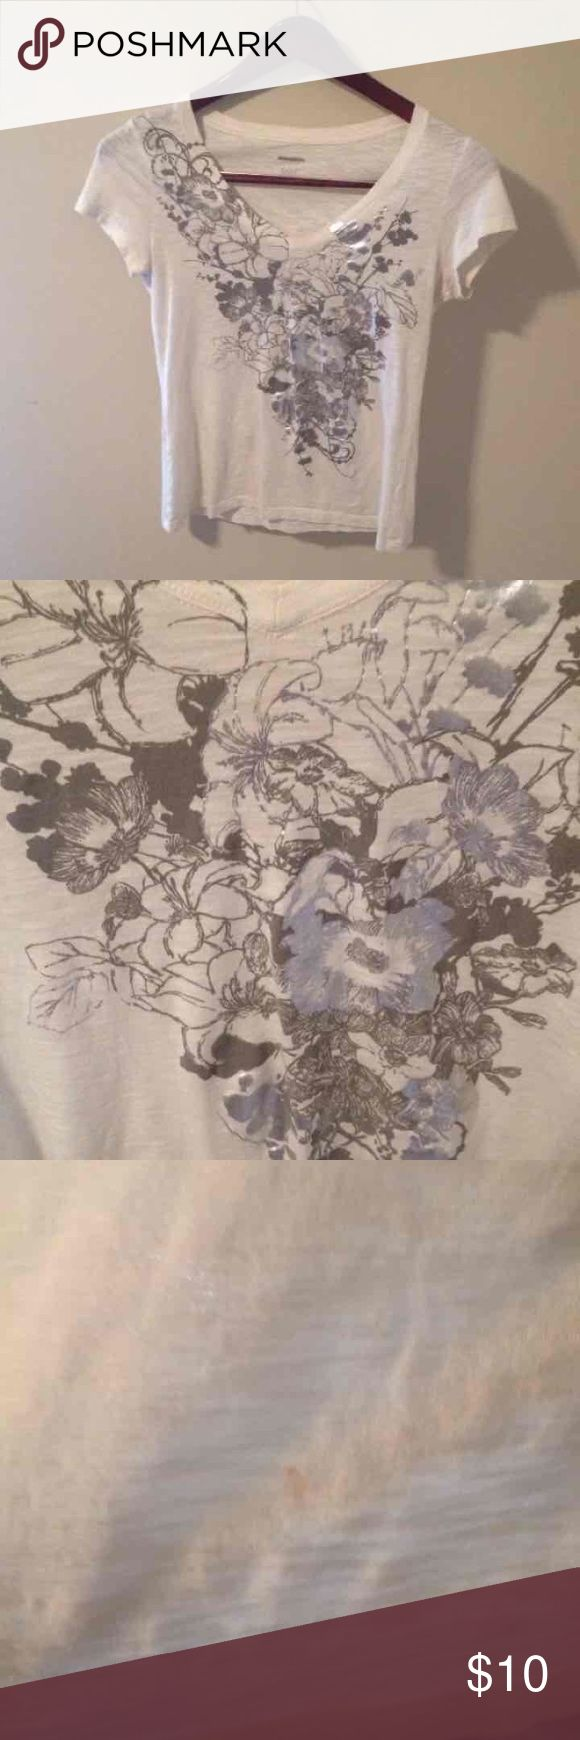 Express White Woman's Tee. Sz. small Express White Woman's Tee. Sz. small  A few little spots/holes hardly noticeable. Express label has a line through it.Overall Good Condition! Sold as is. Express Tops Tees - Short Sleeve